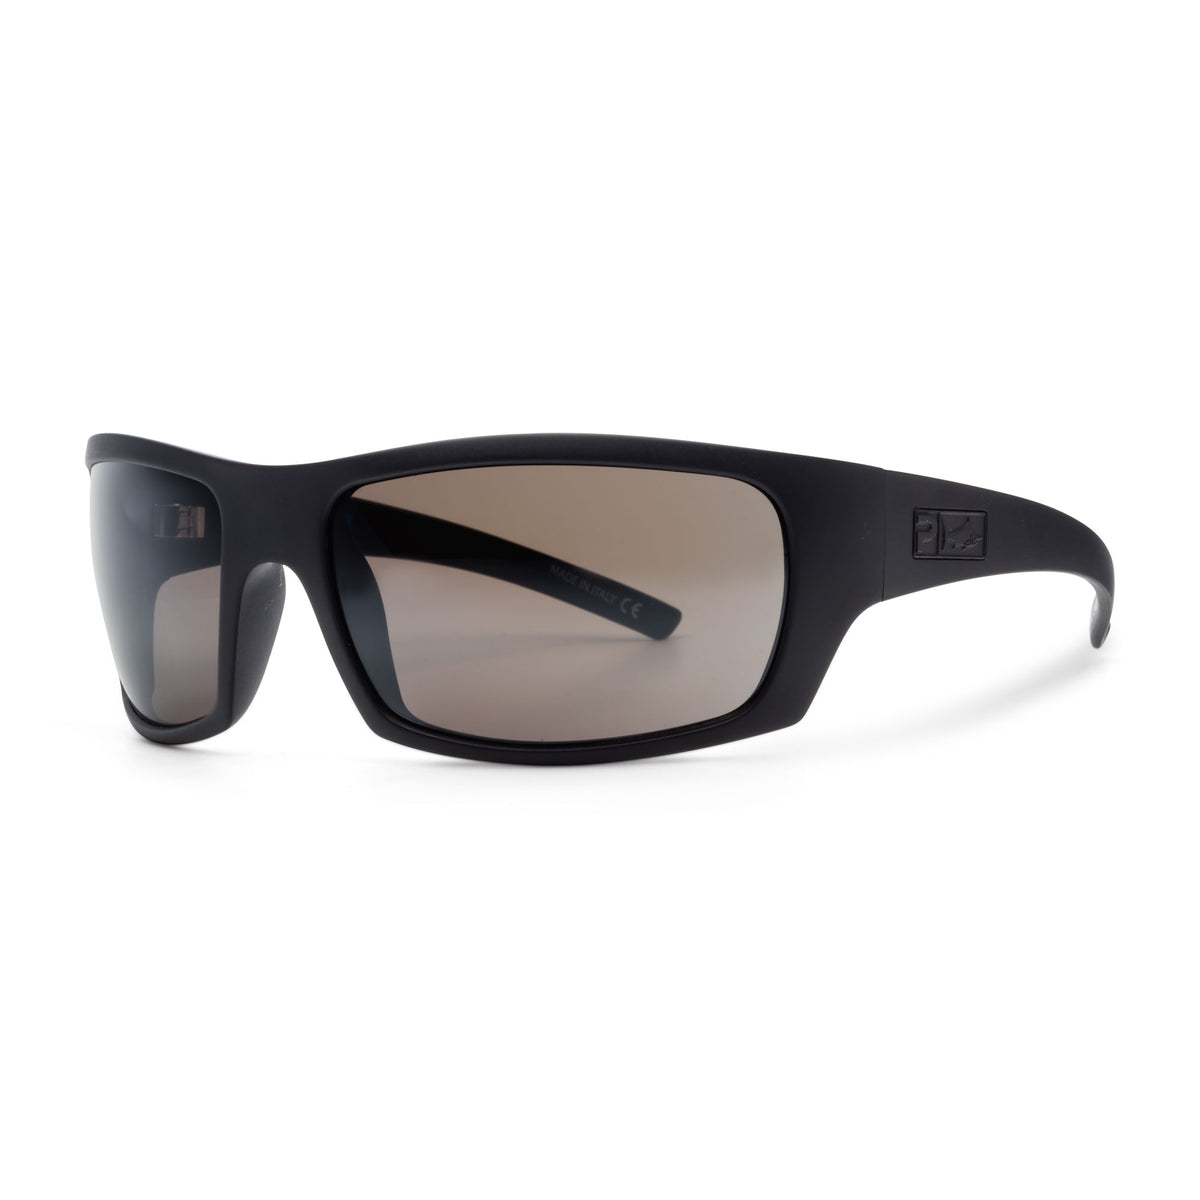 The Mack - Polarized XP-700™ Polycarbonate Lens Big Image - 4